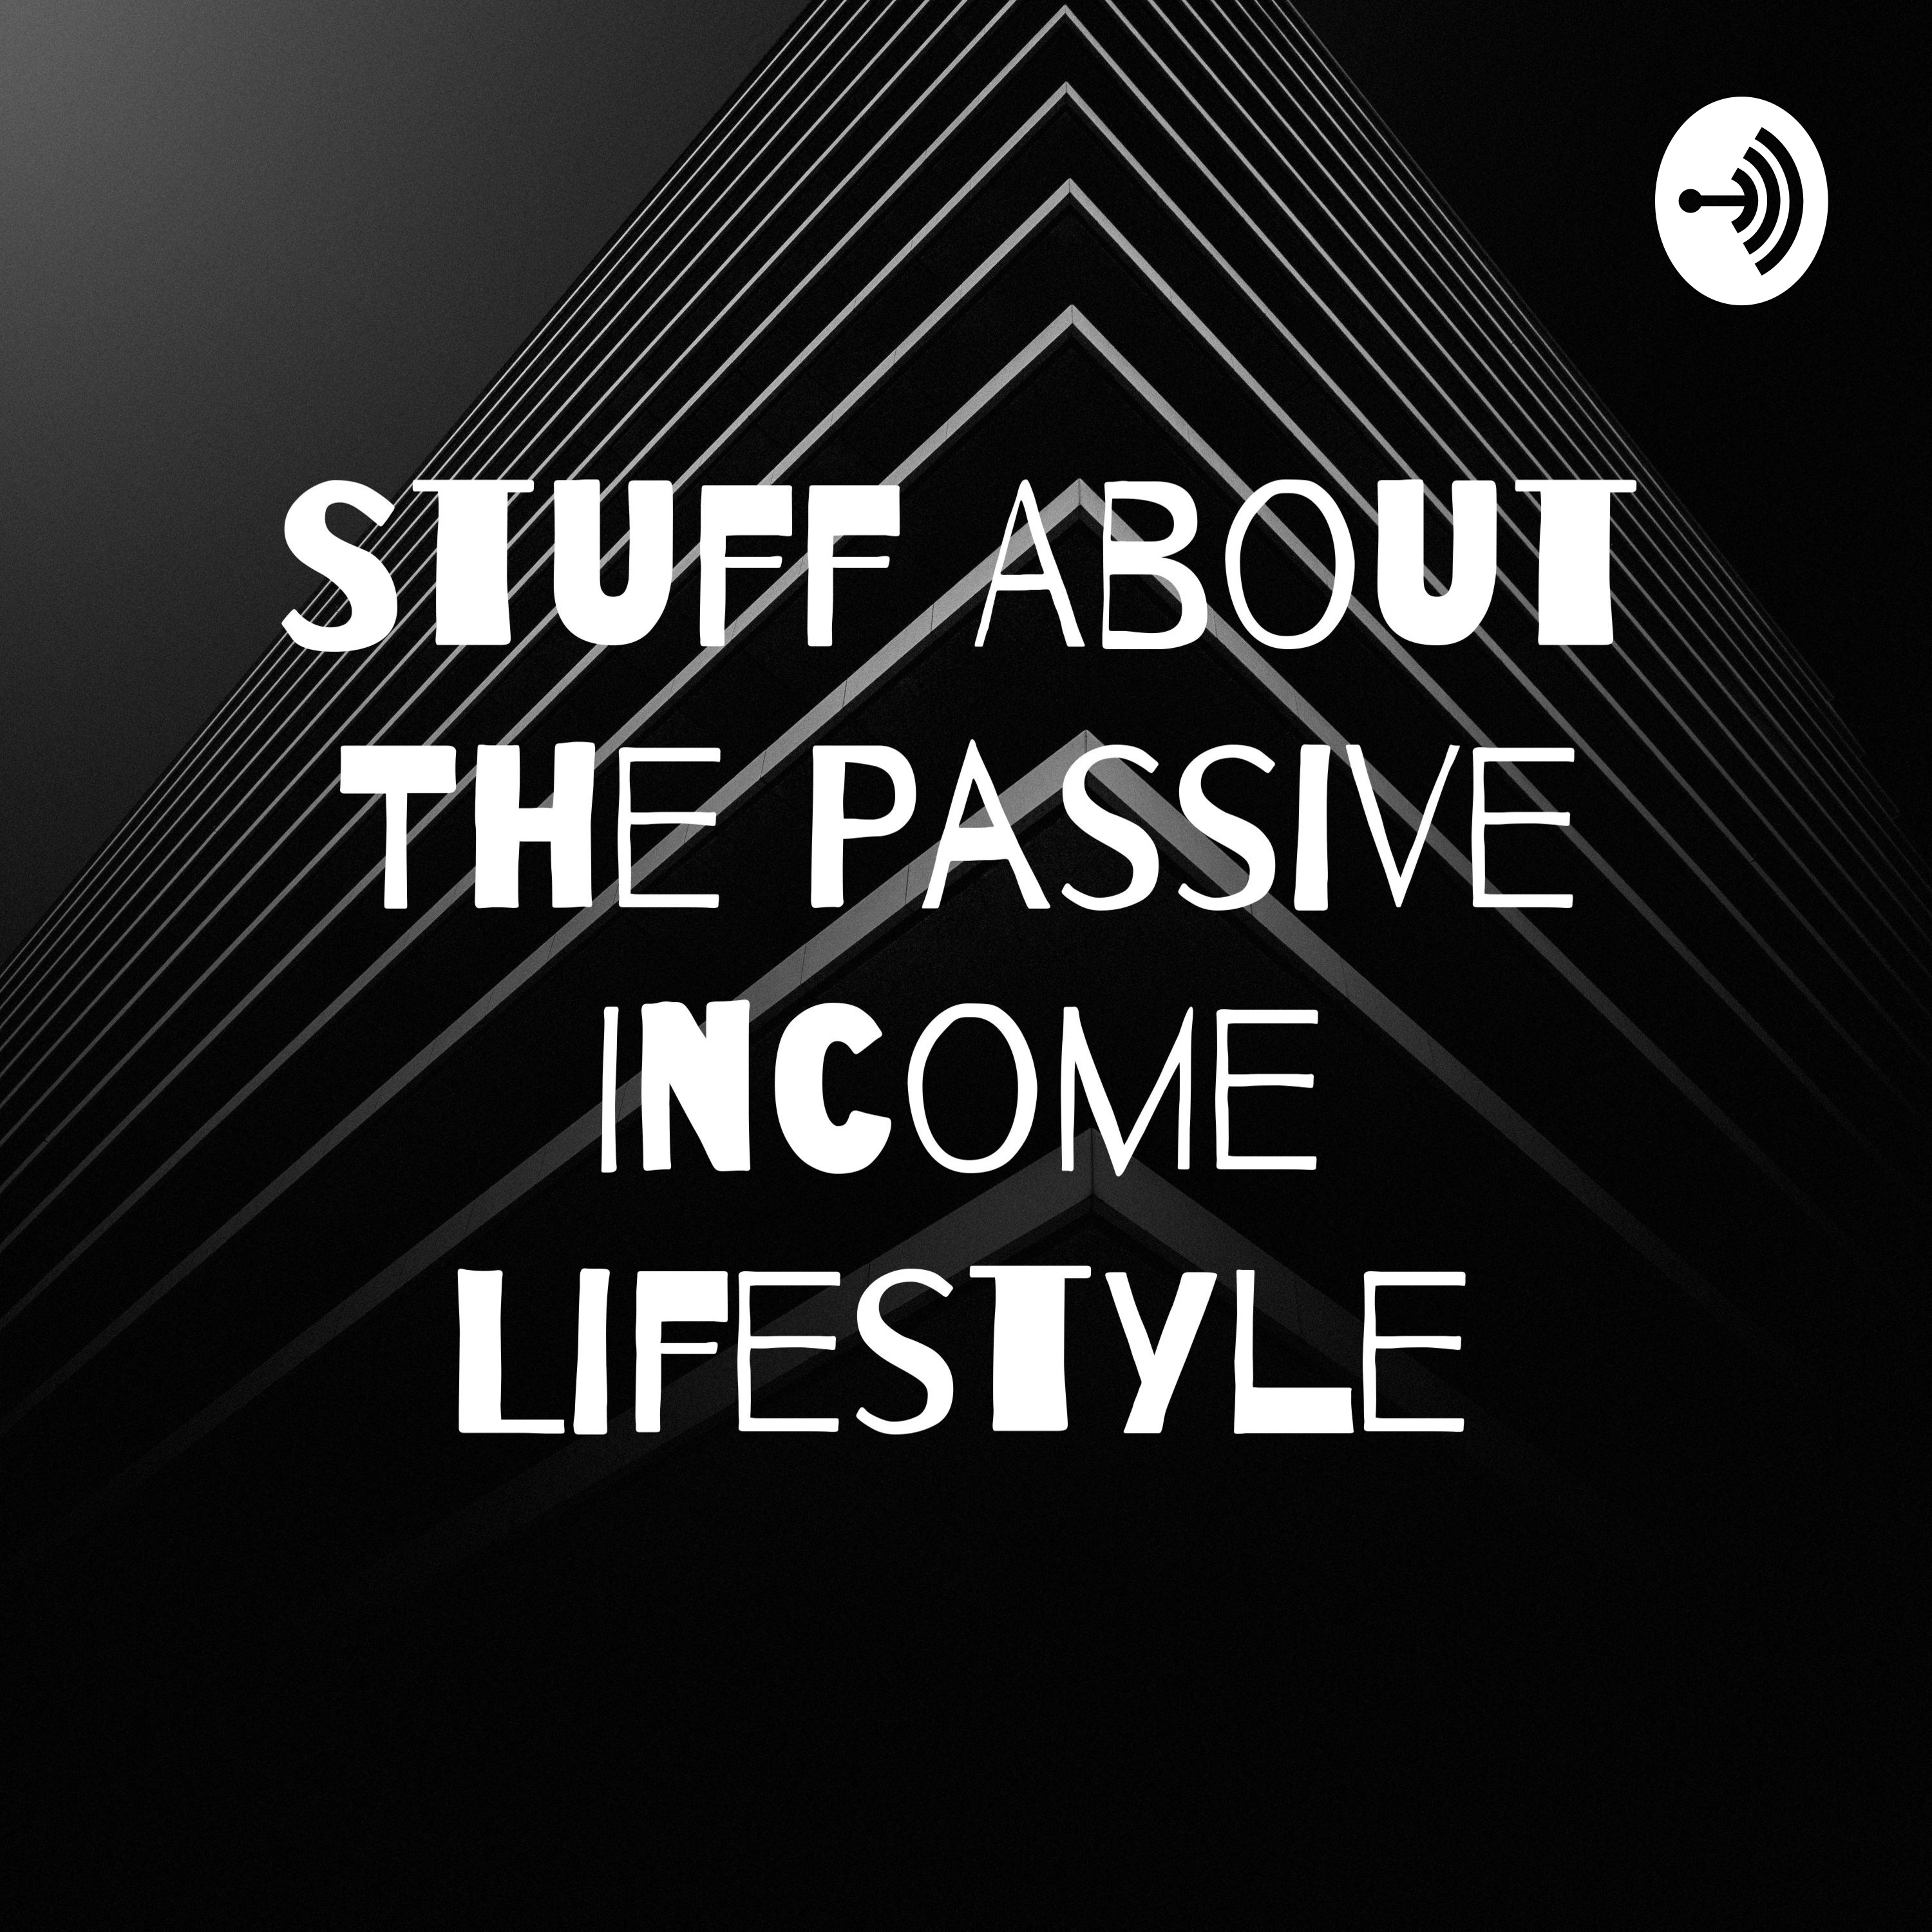 #1: My Journey - Generating Passive Income